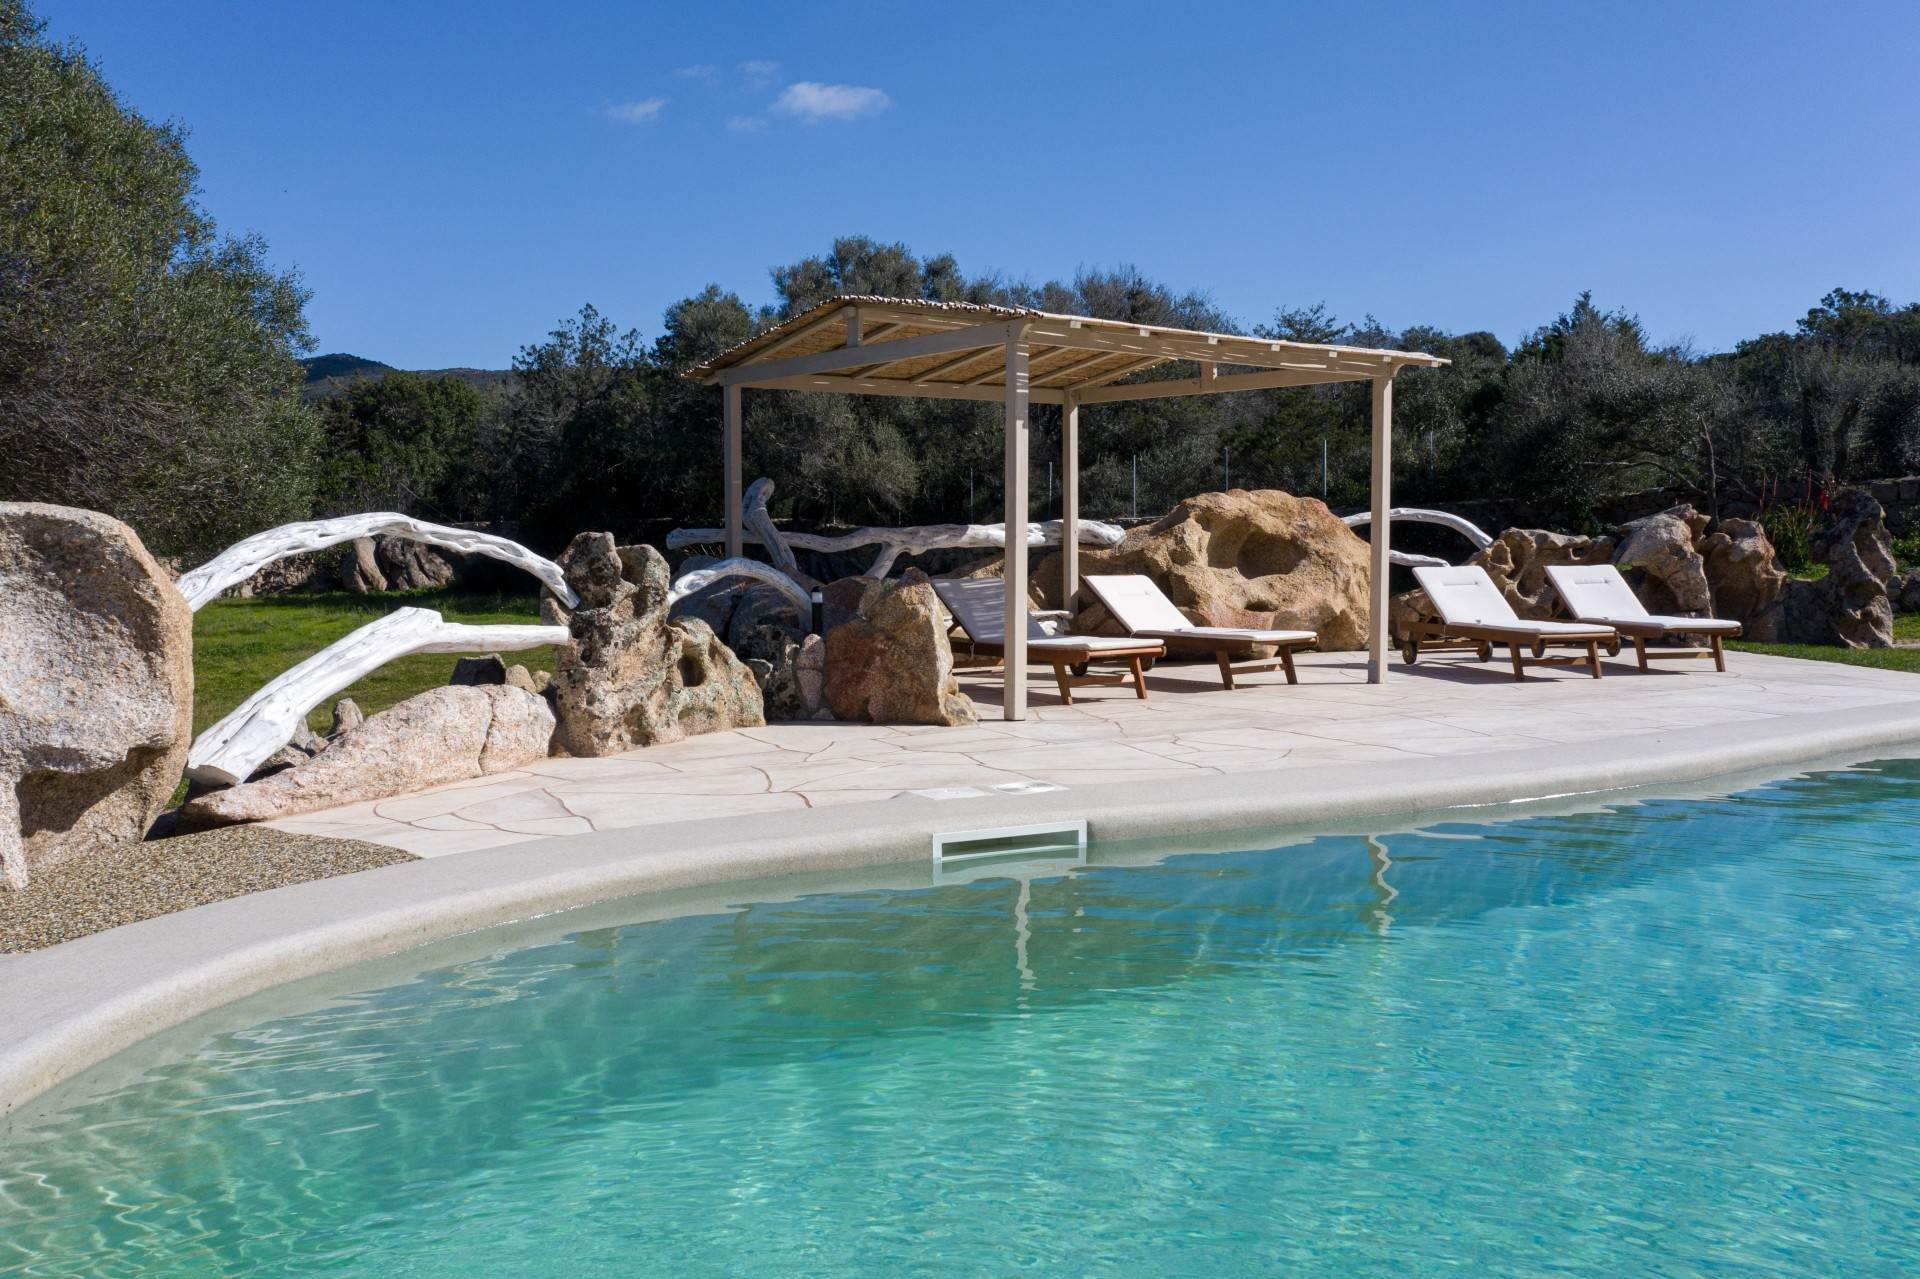 19. Villa/Townhouse for Rent at Country Villa with Pool for rent Costa Smeralda, Olbia Tempio,07021 Italy